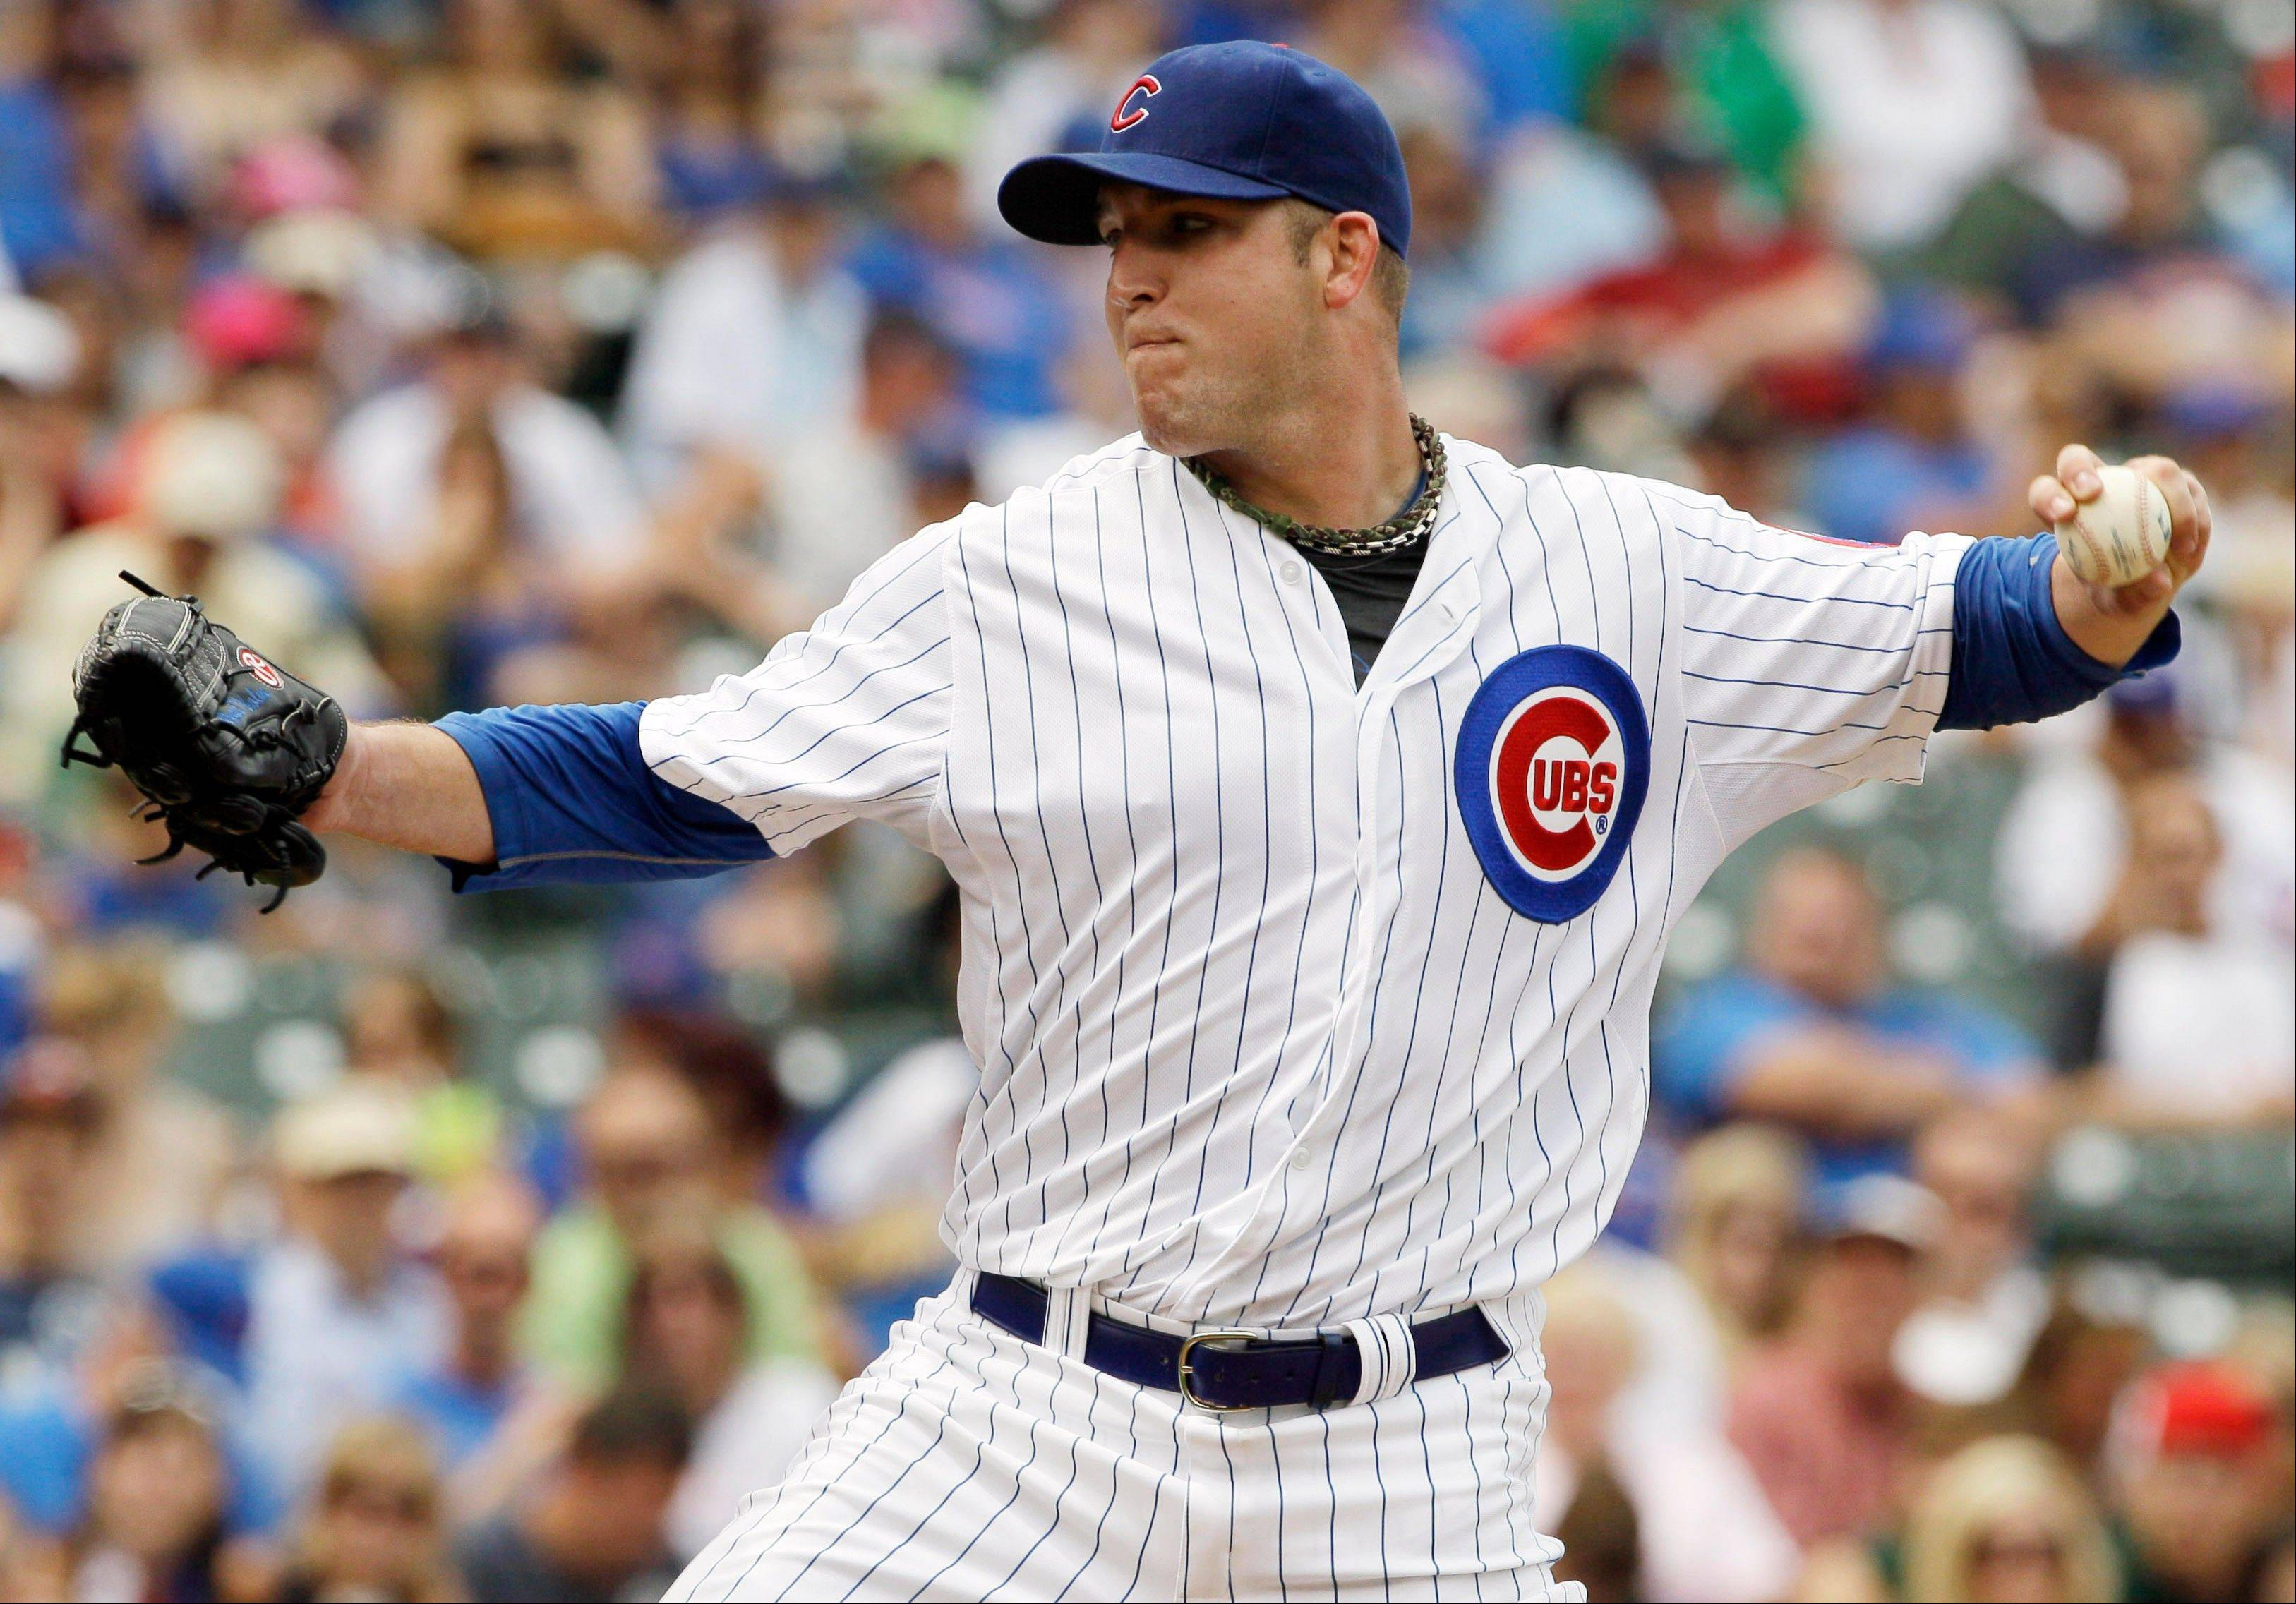 Cubs starter Paul Maholm led the way in shutting out Houston on Friday at Wrigley Field, working fast and efficiently for the win.